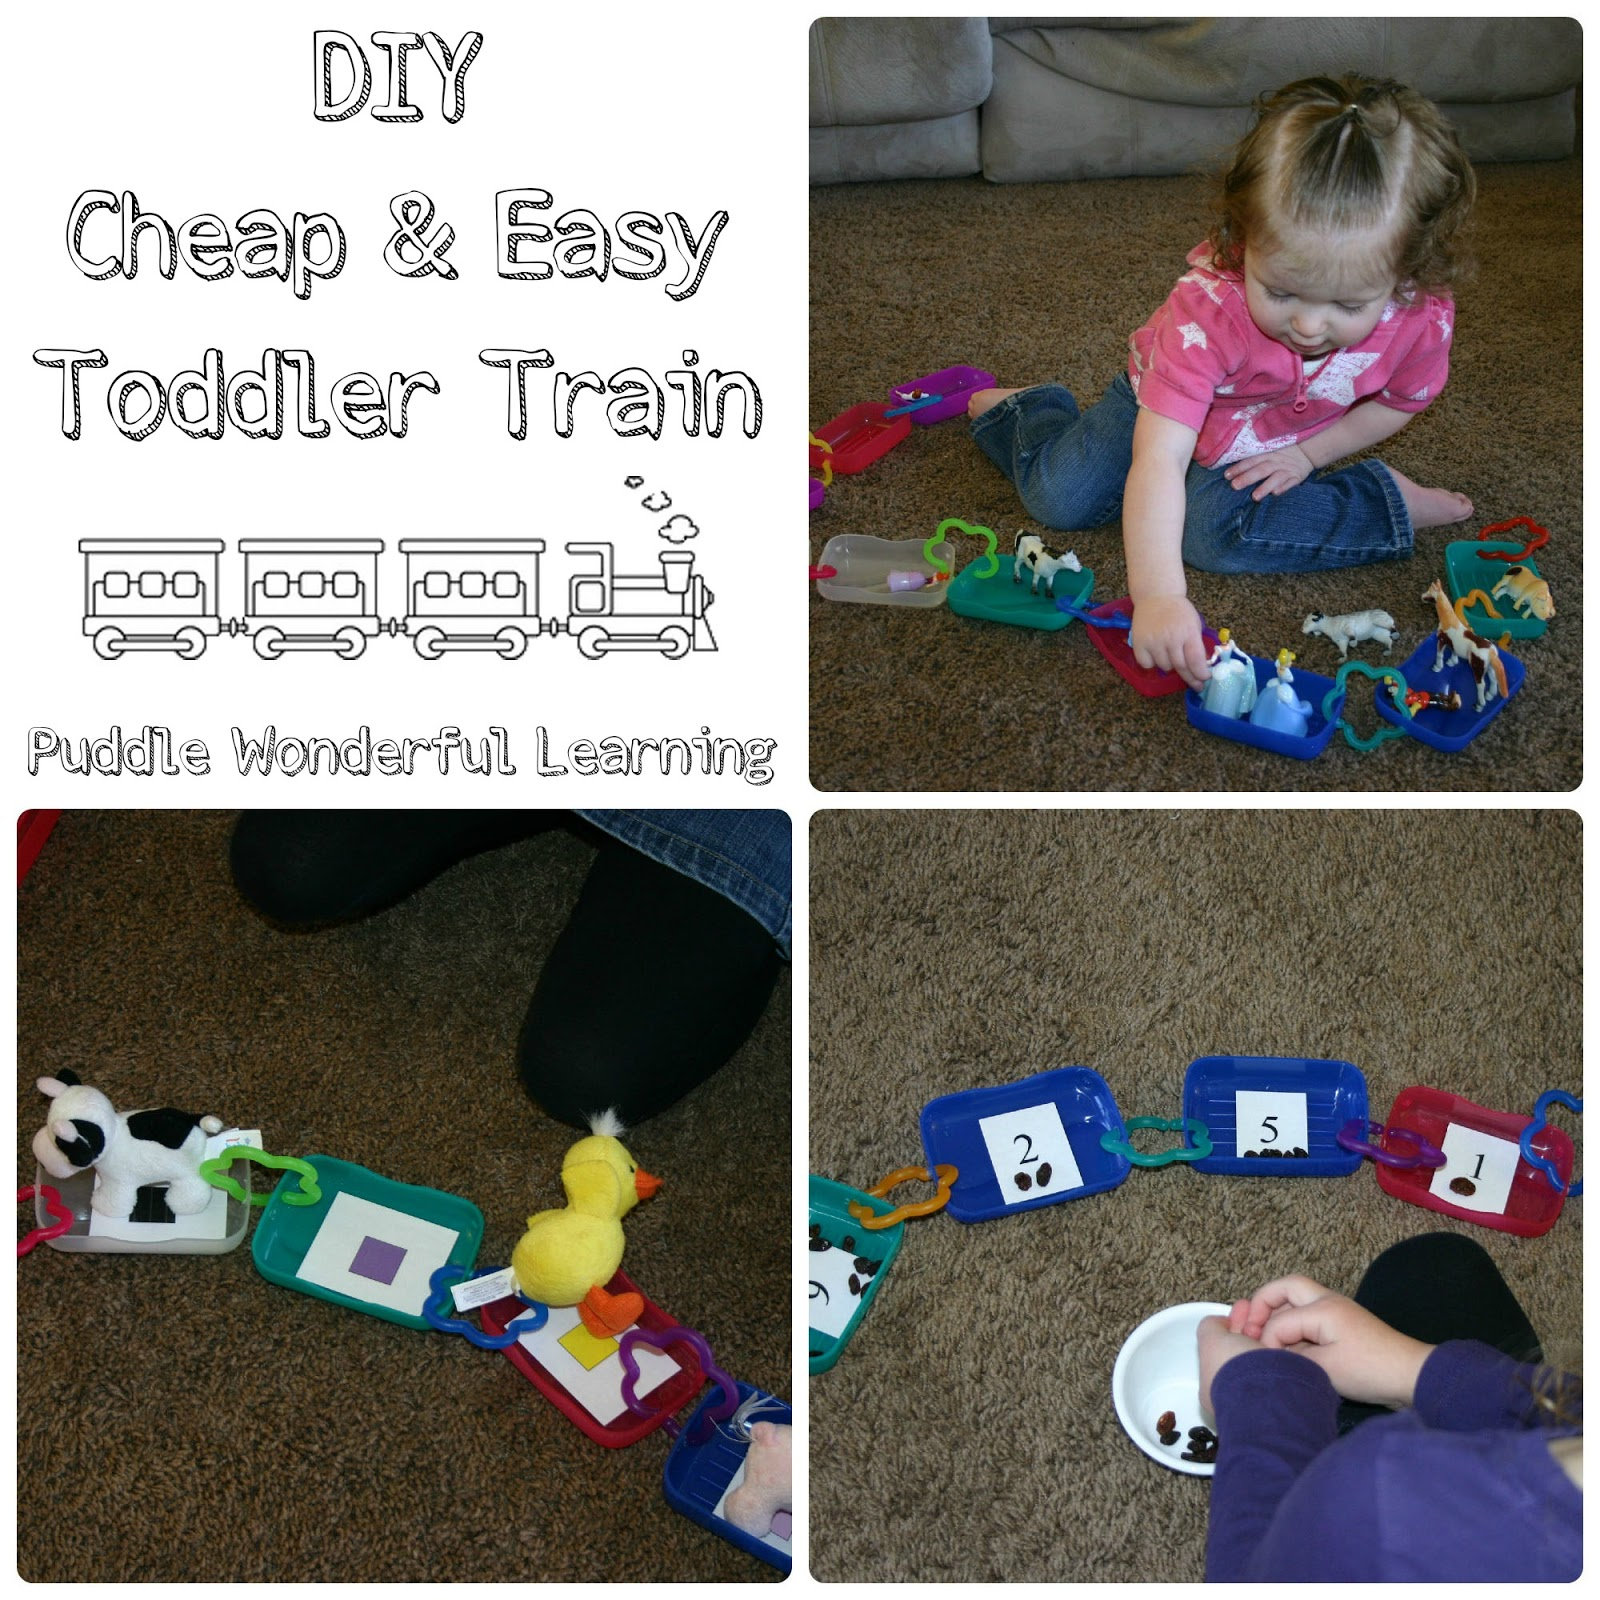 Puddle Wonderful Learning Toddler Activities Diy Cheap Amp Easy Toddler Train